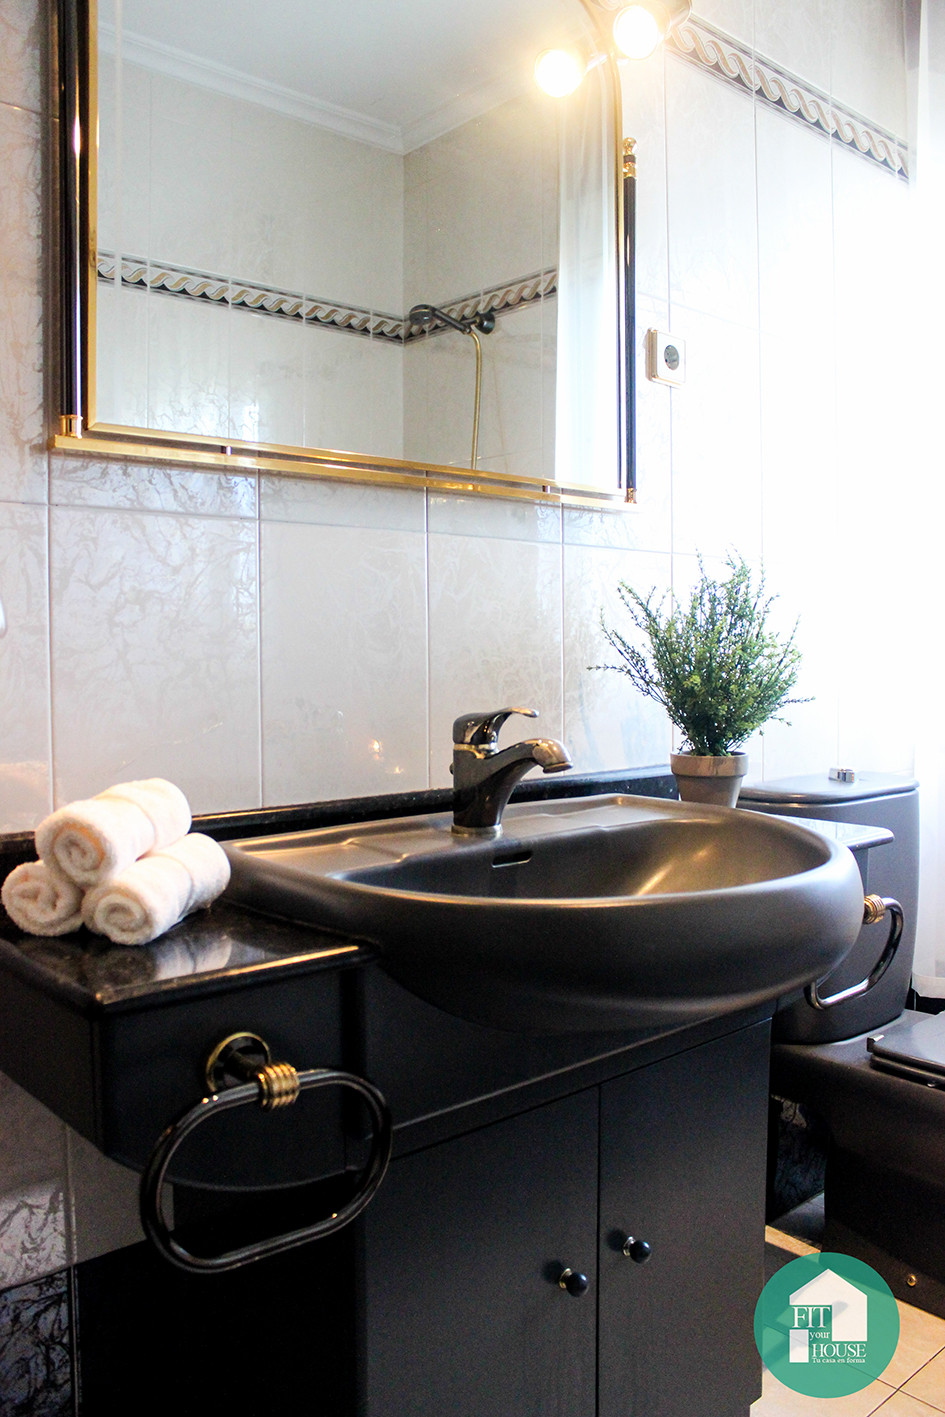 Baño después de Home Staging Fityourhouse Cantabria